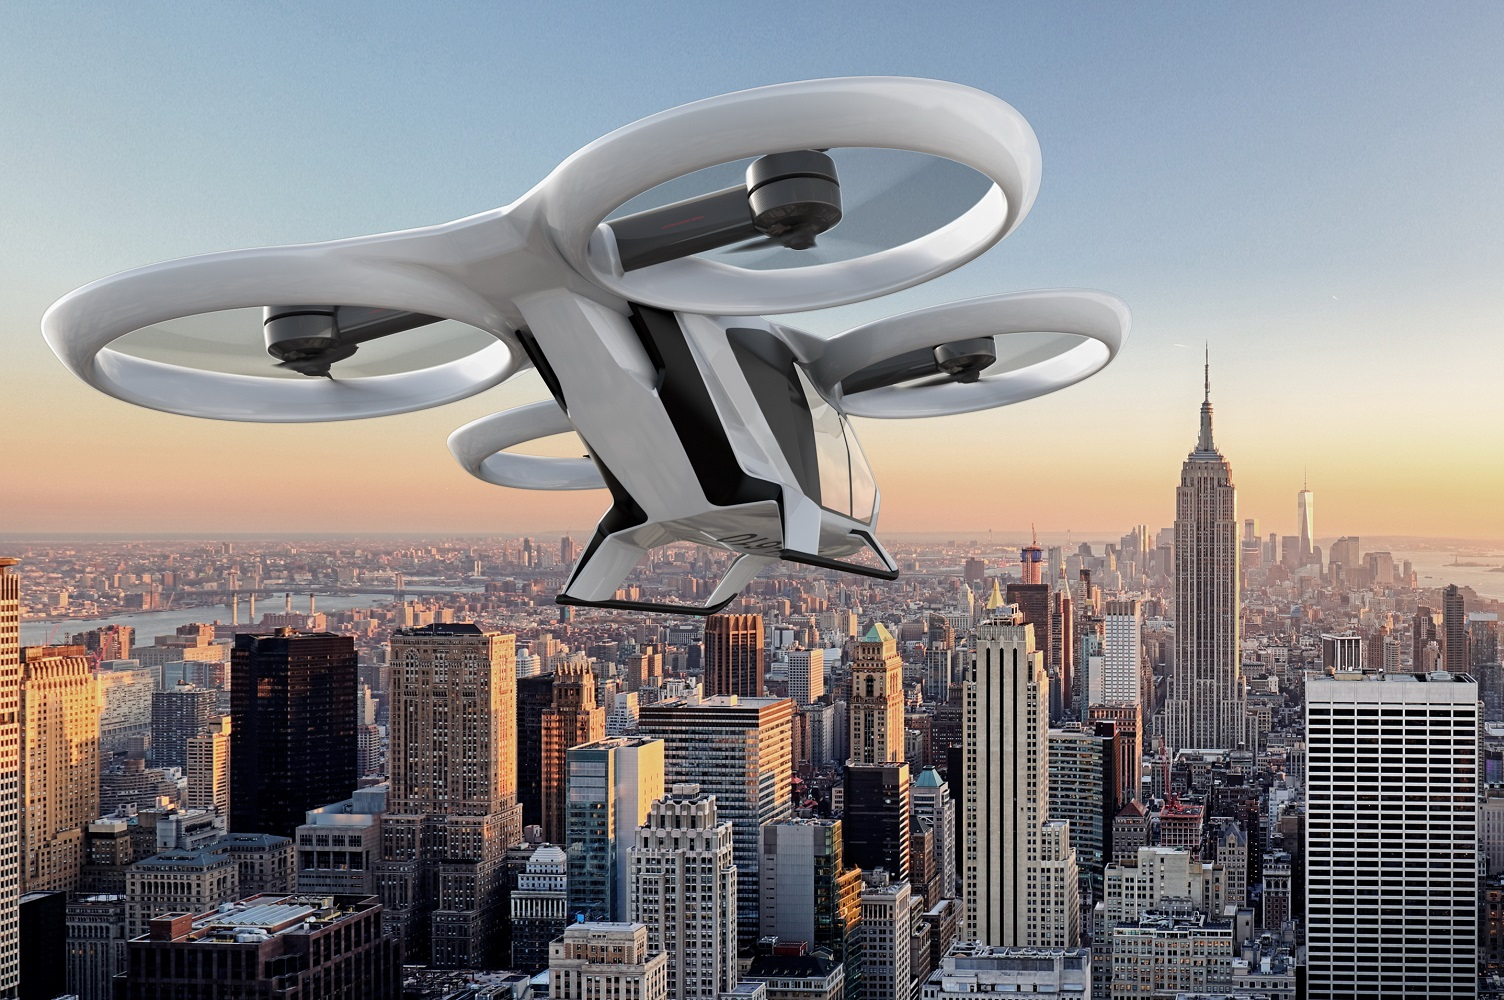 concept art of a drone flying over New York City